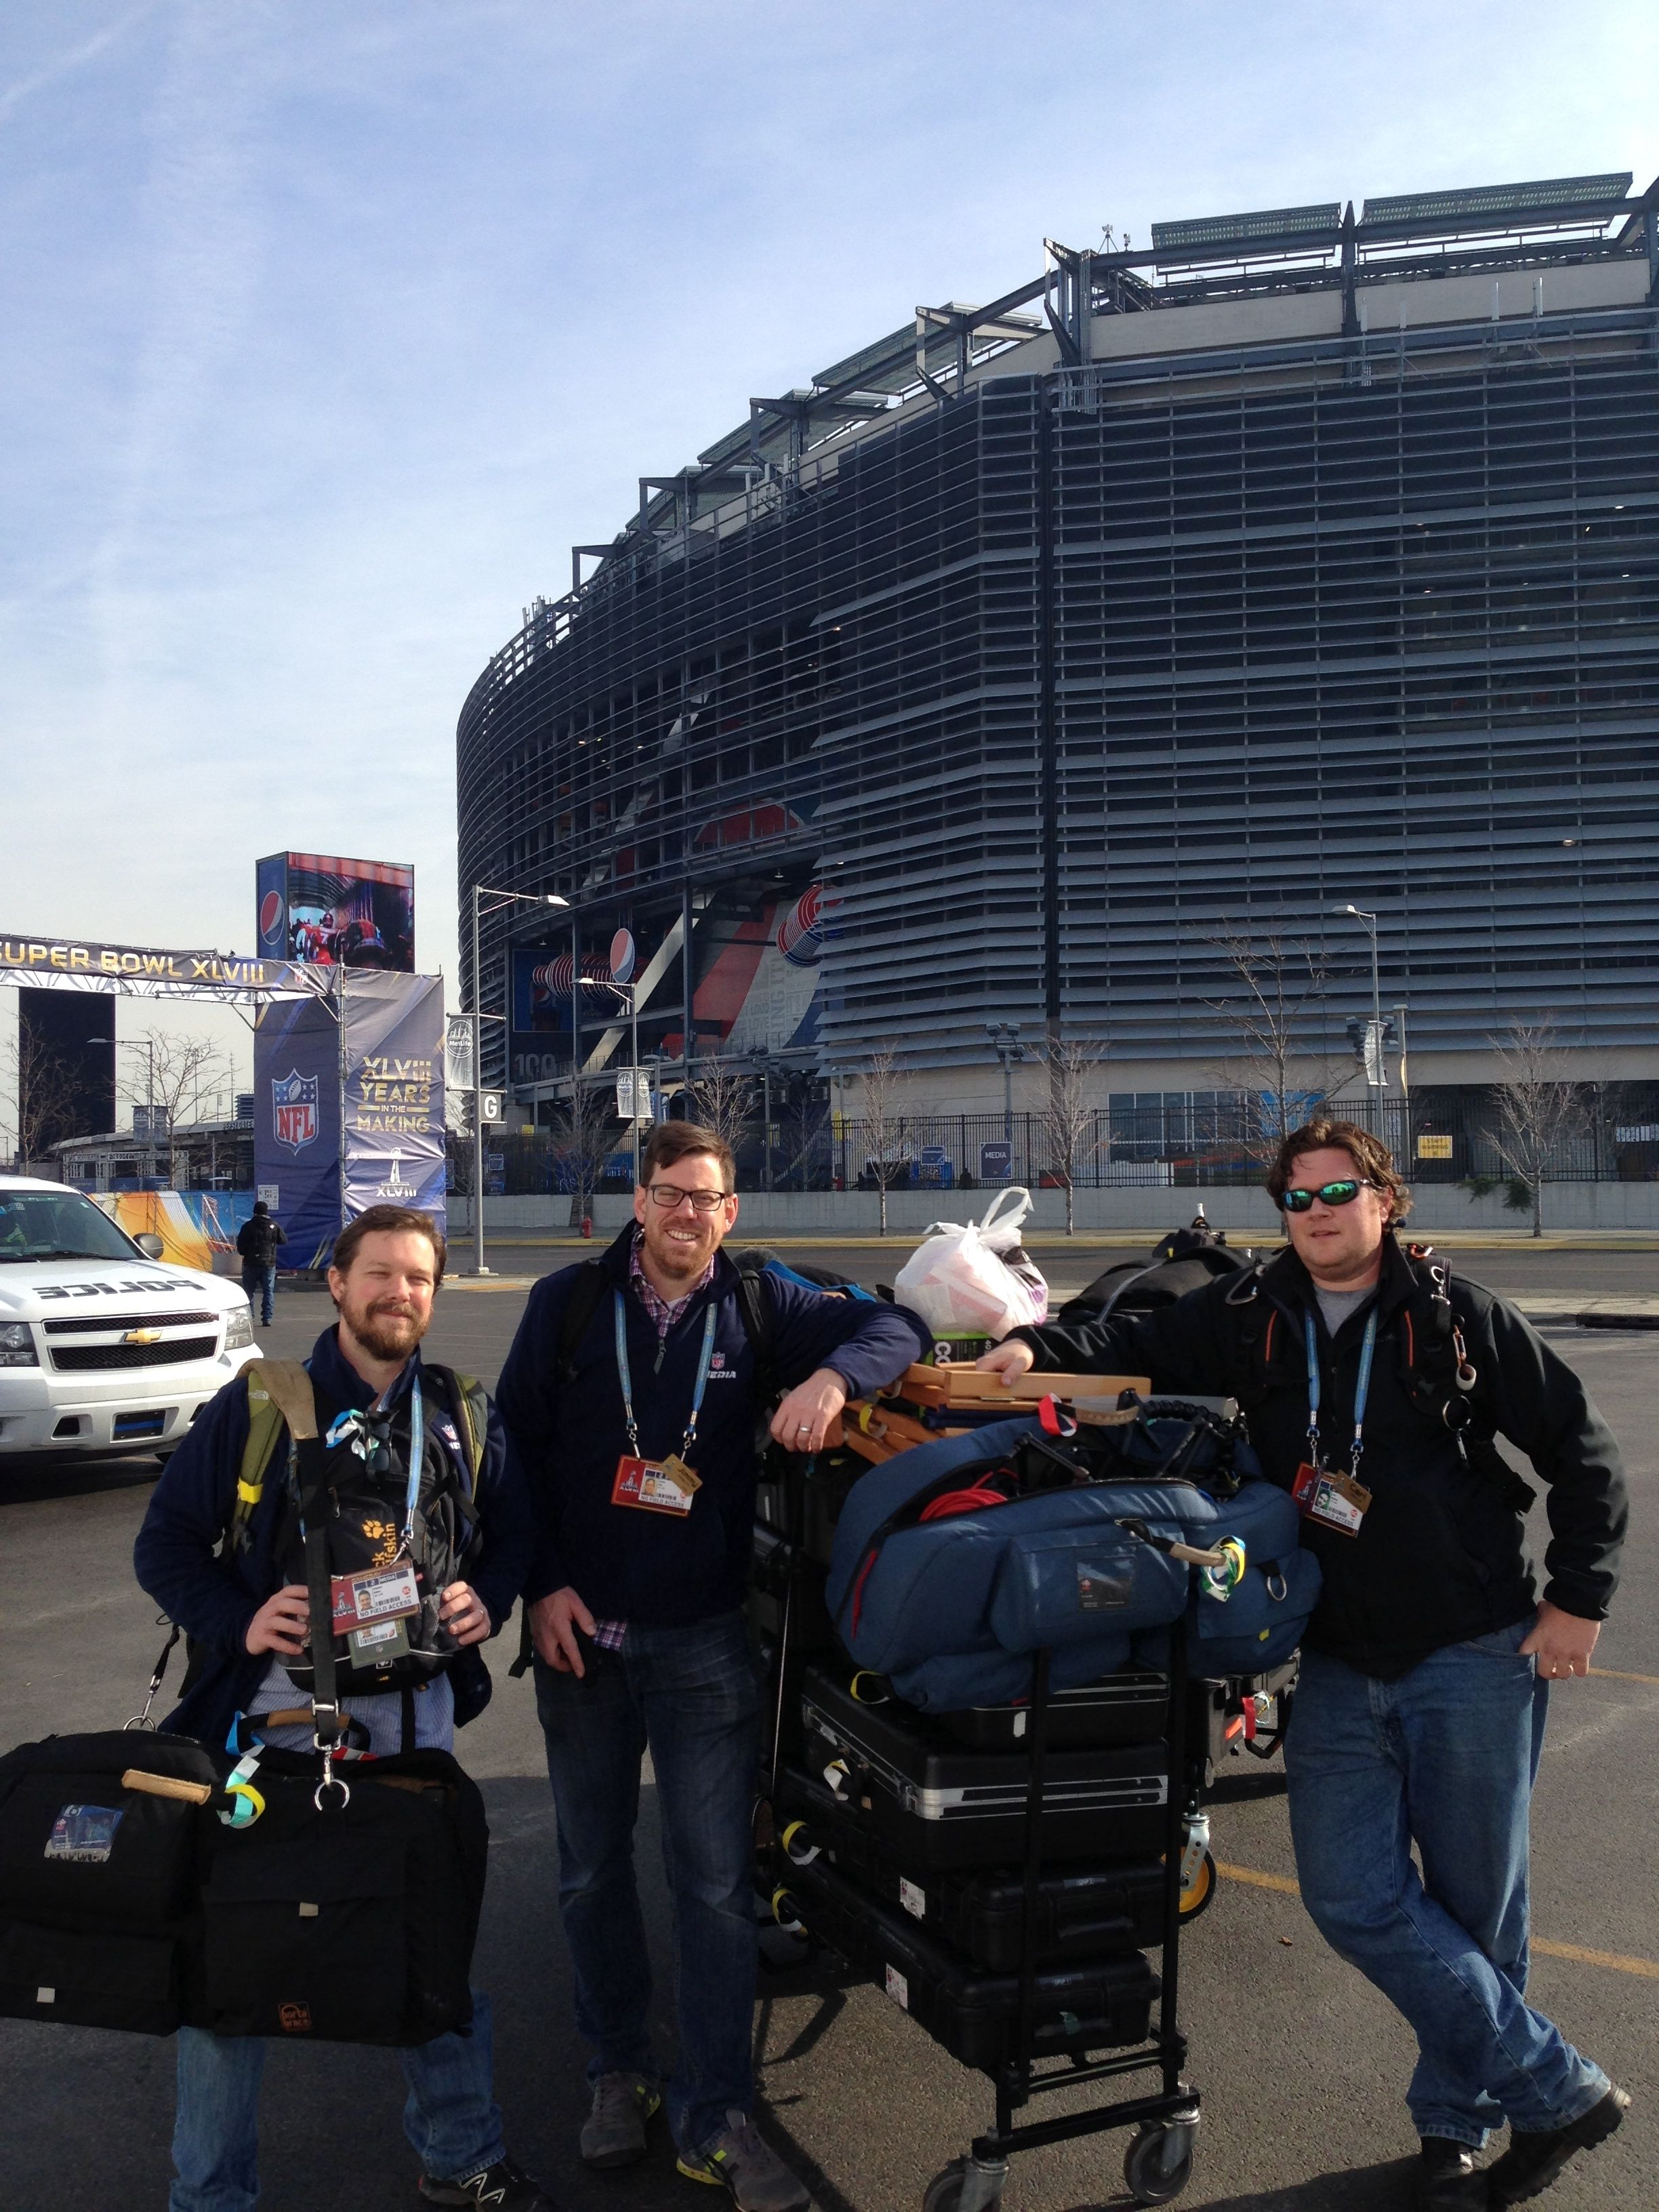 IMG 2840 Charleston Crew goes long for NFL Network at Superbowl 2014